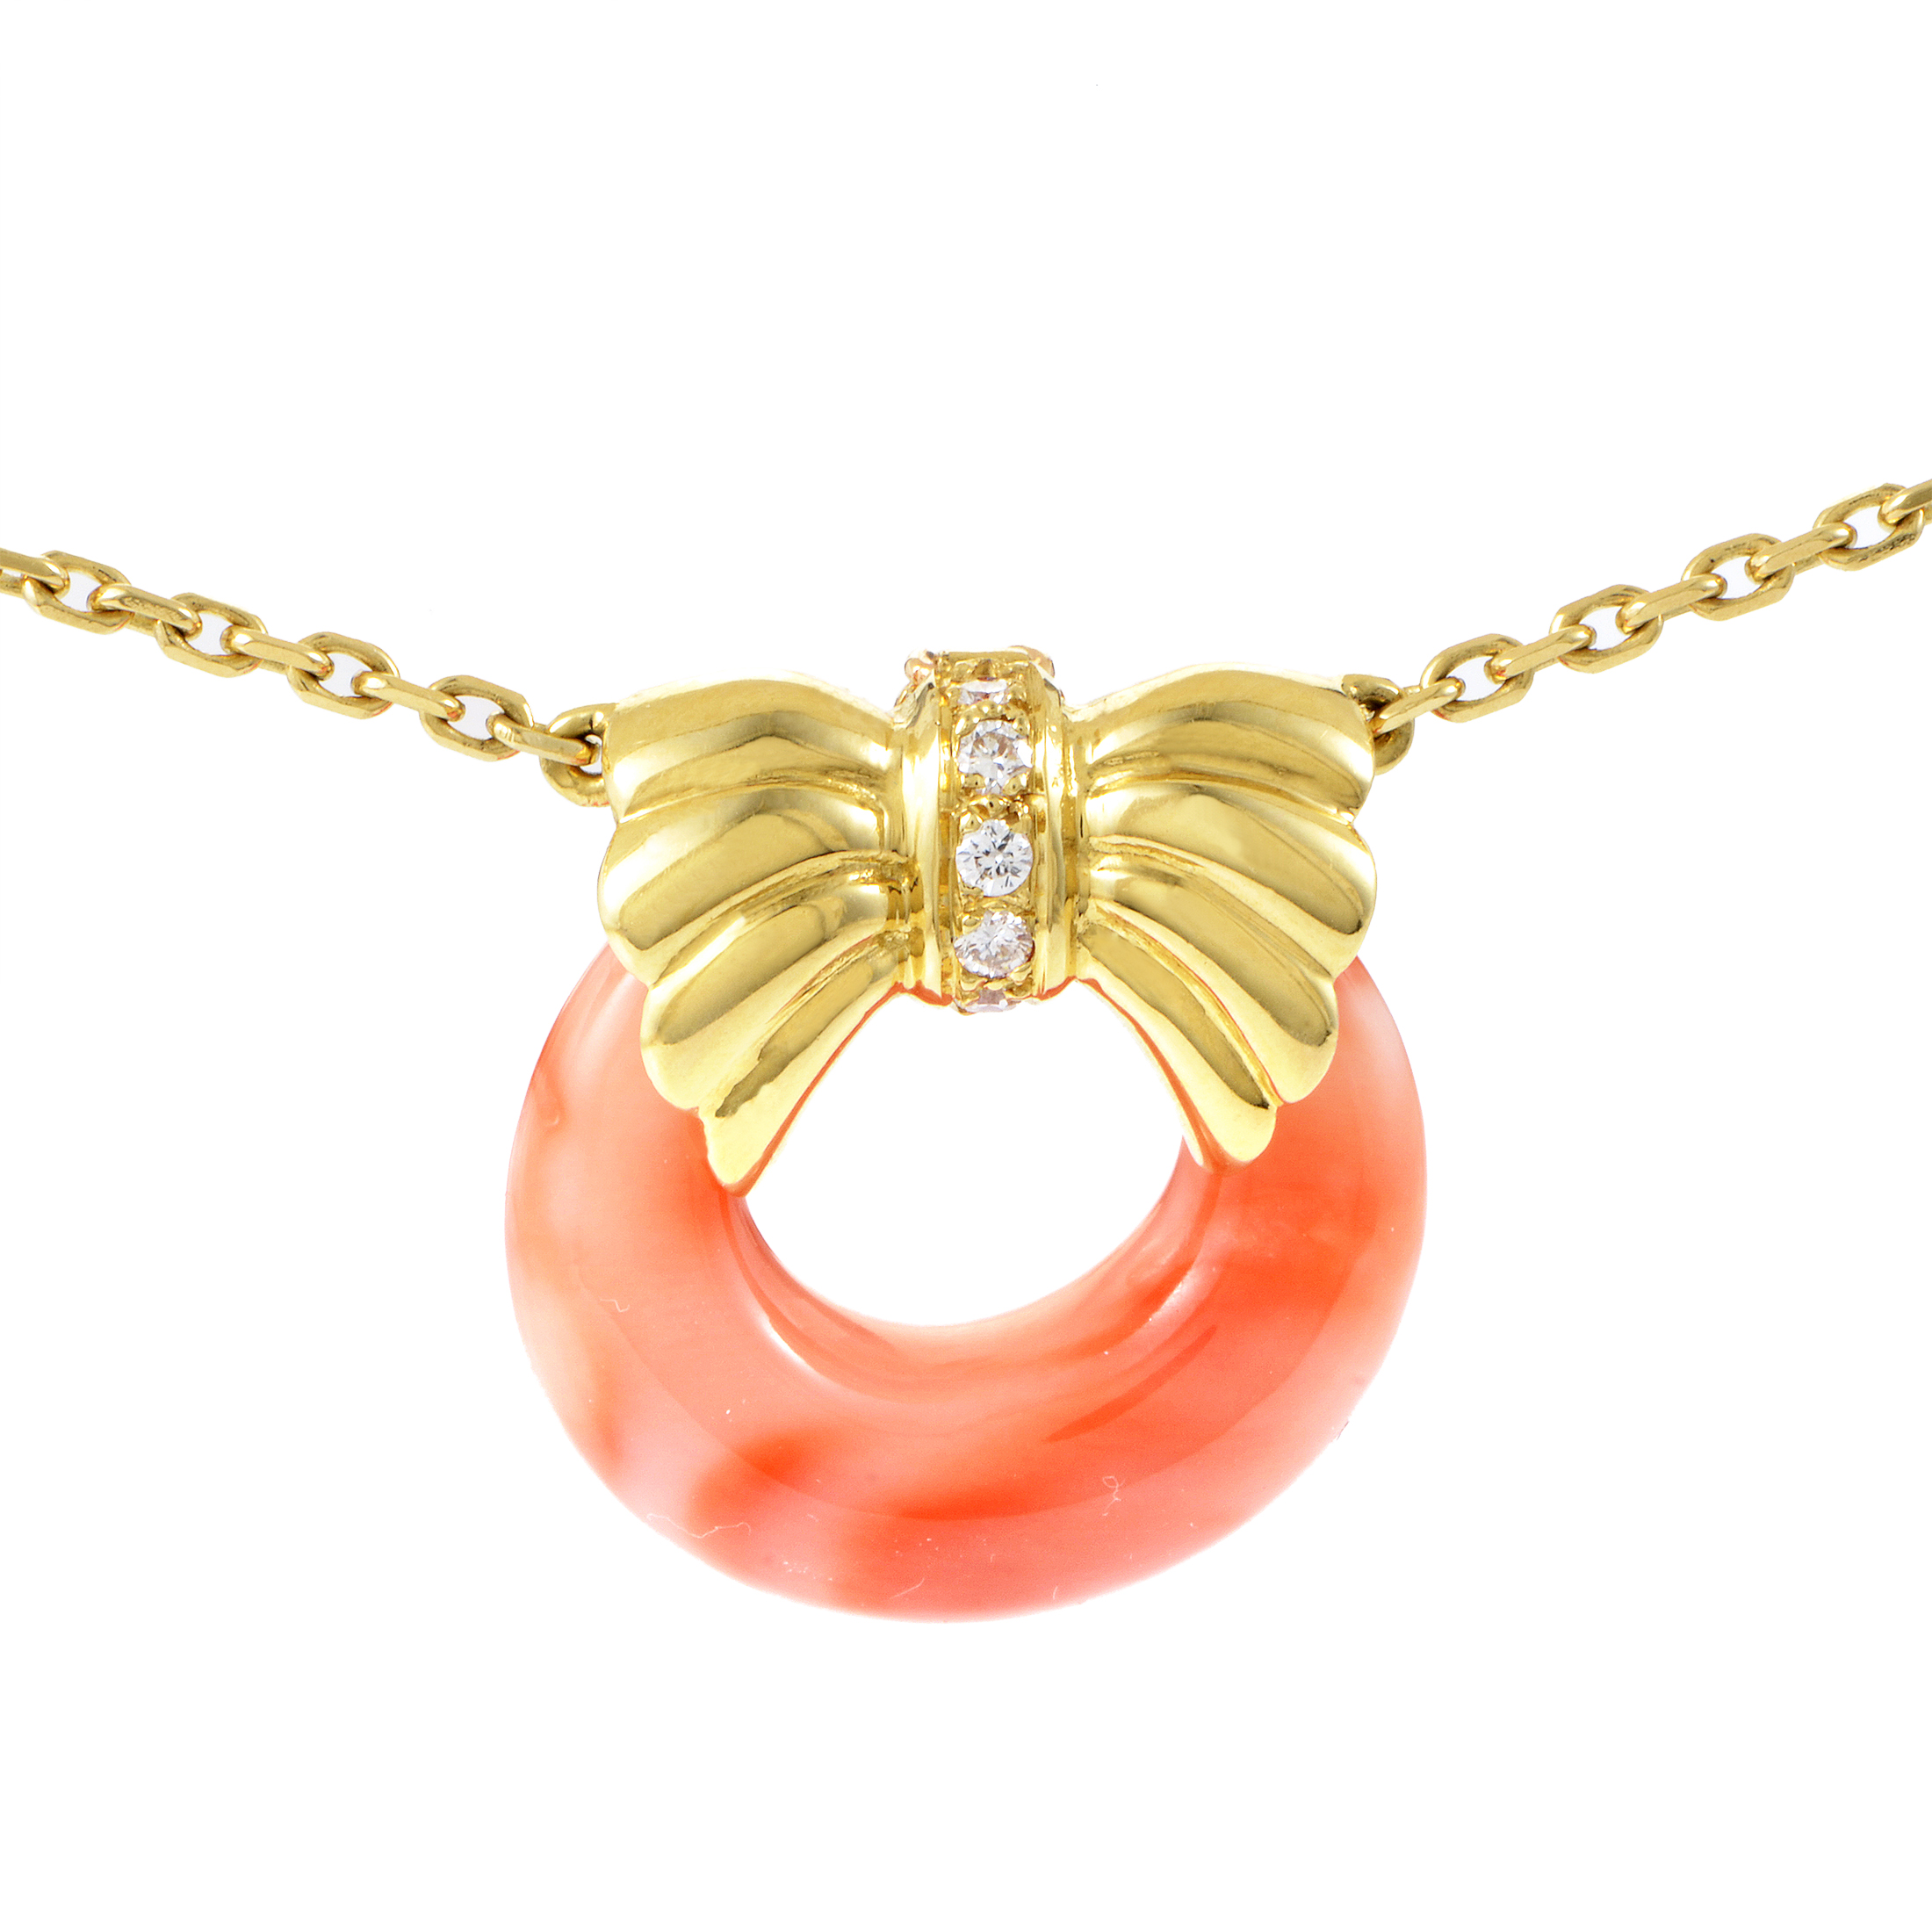 Van Cleef & Arpels Women's 18K Yellow Gold Diamond & Coral Pendant Necklace